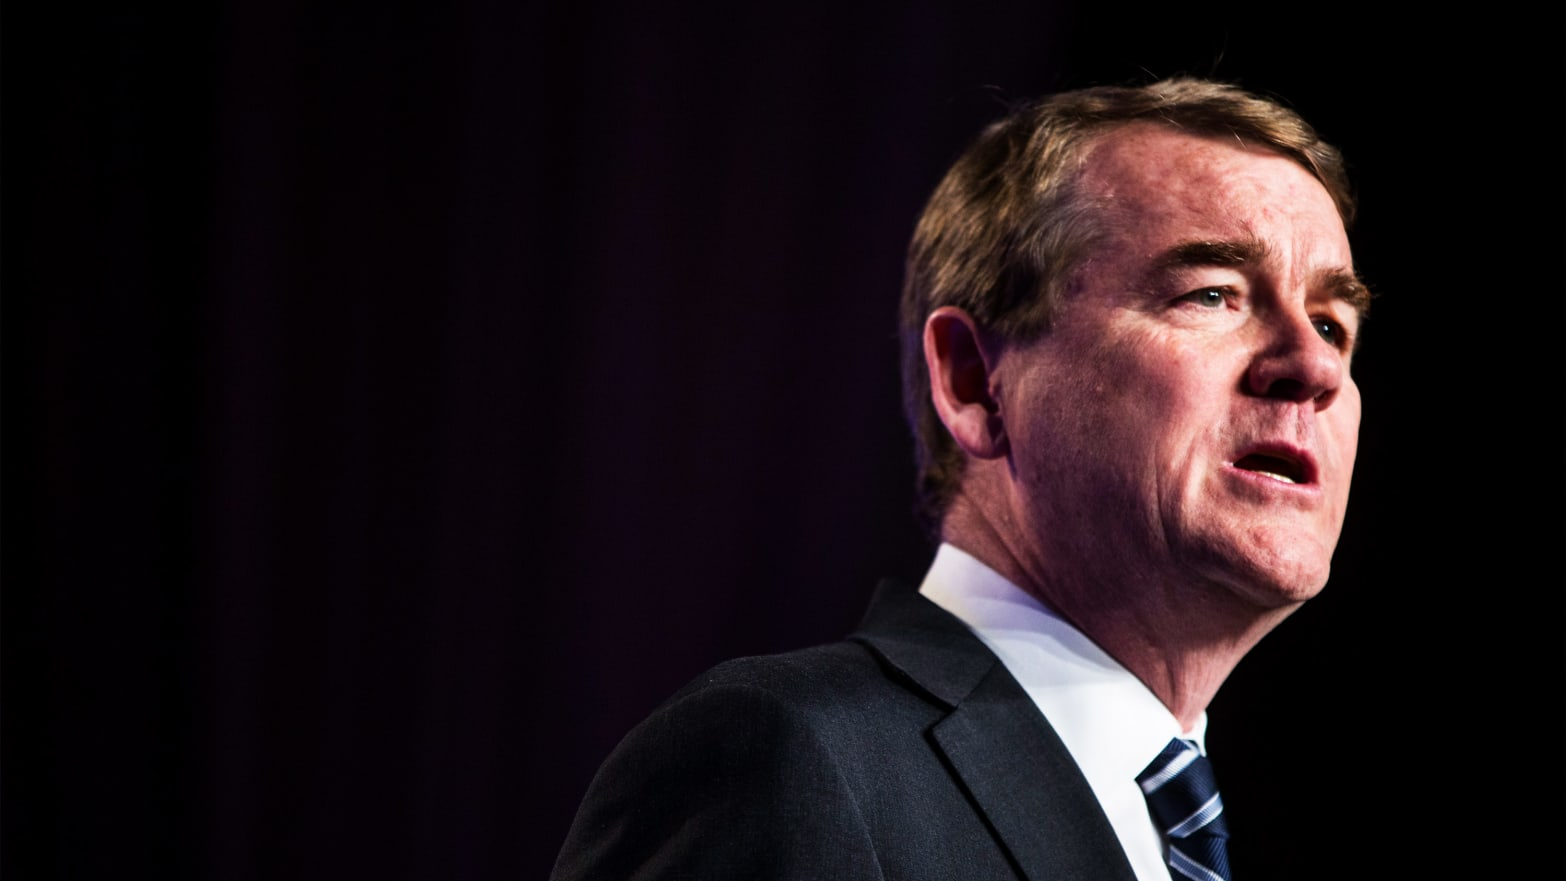 Michael Bennet Might Not Win in 2020 but He Has All the Right Ideas